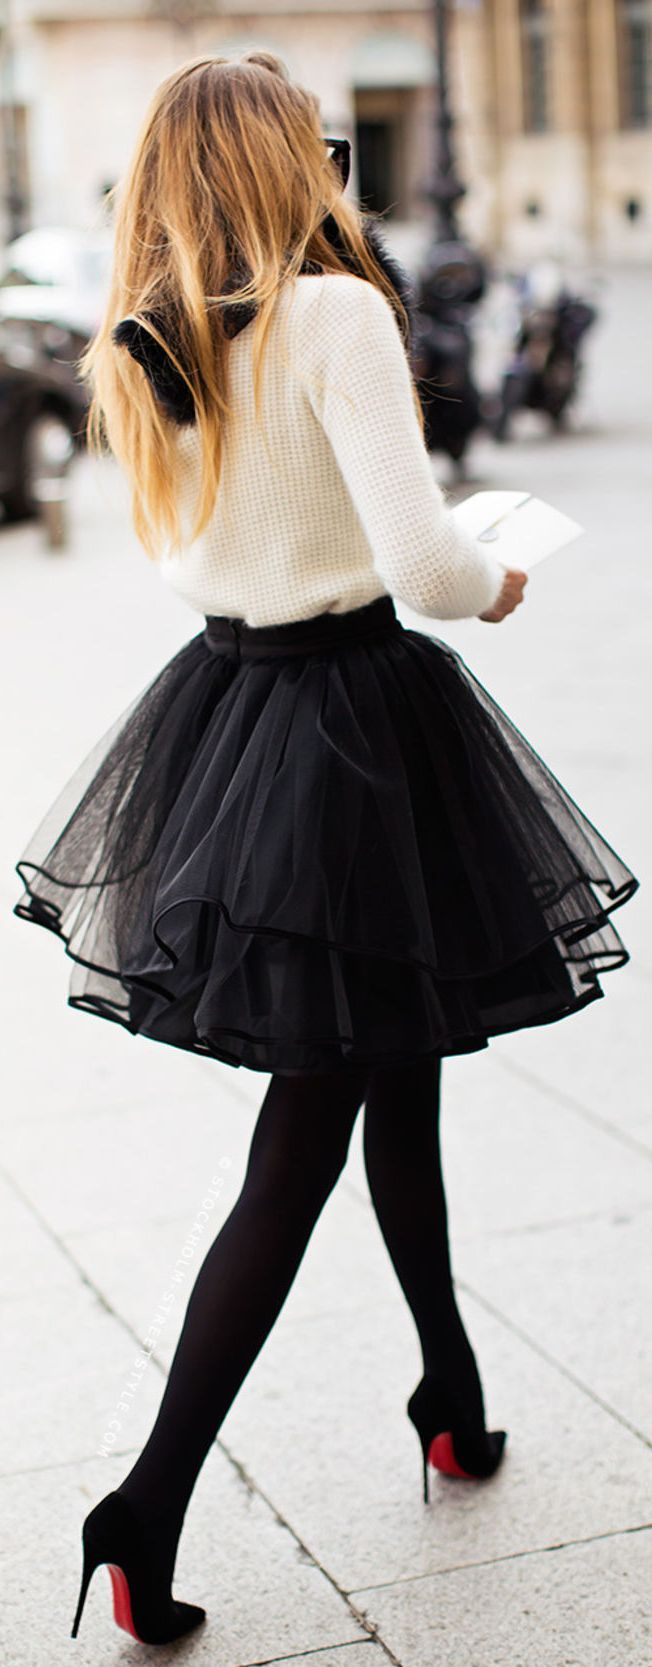 Winter Urban Chic Women Fashion Streetstyle - Black and White Stylish Cocktail Outfit, Black faux fur scarf, White Fluffy Cropped Sweater, Black Chiffon Tulle Mini Skirt, Black OPaque Tights, Black Louboutin Pigalle Pumps